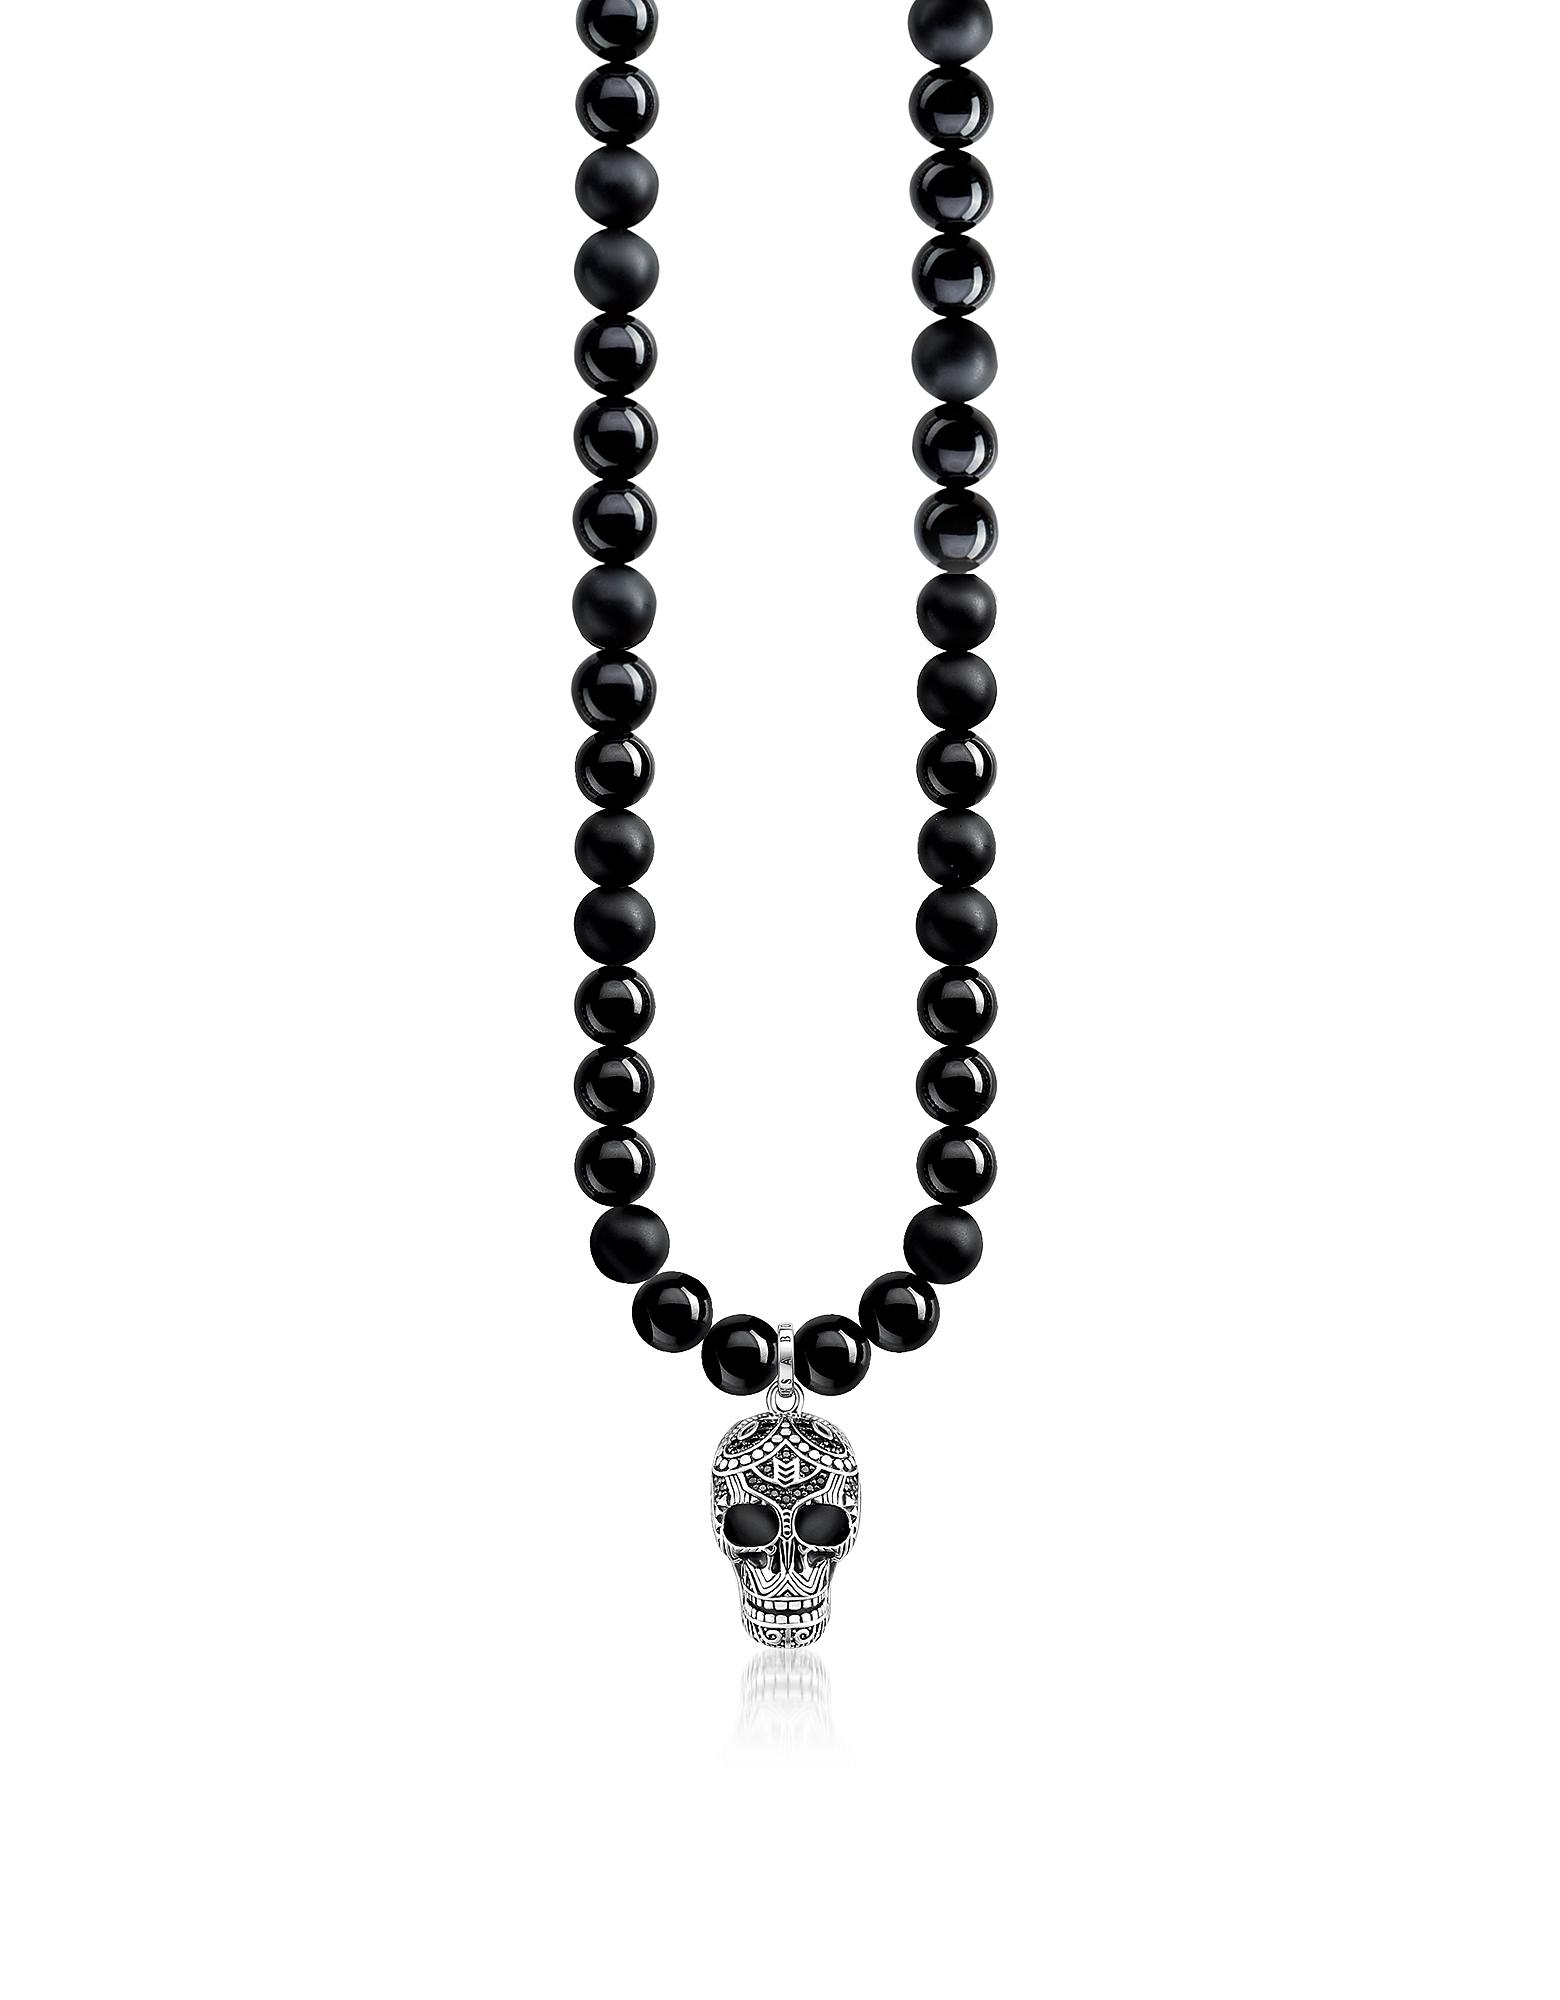 Blackened 925 Sterling Silver & Obsidian Beads Power Necklace Maori Skull Necklace w/Zirconia Pave